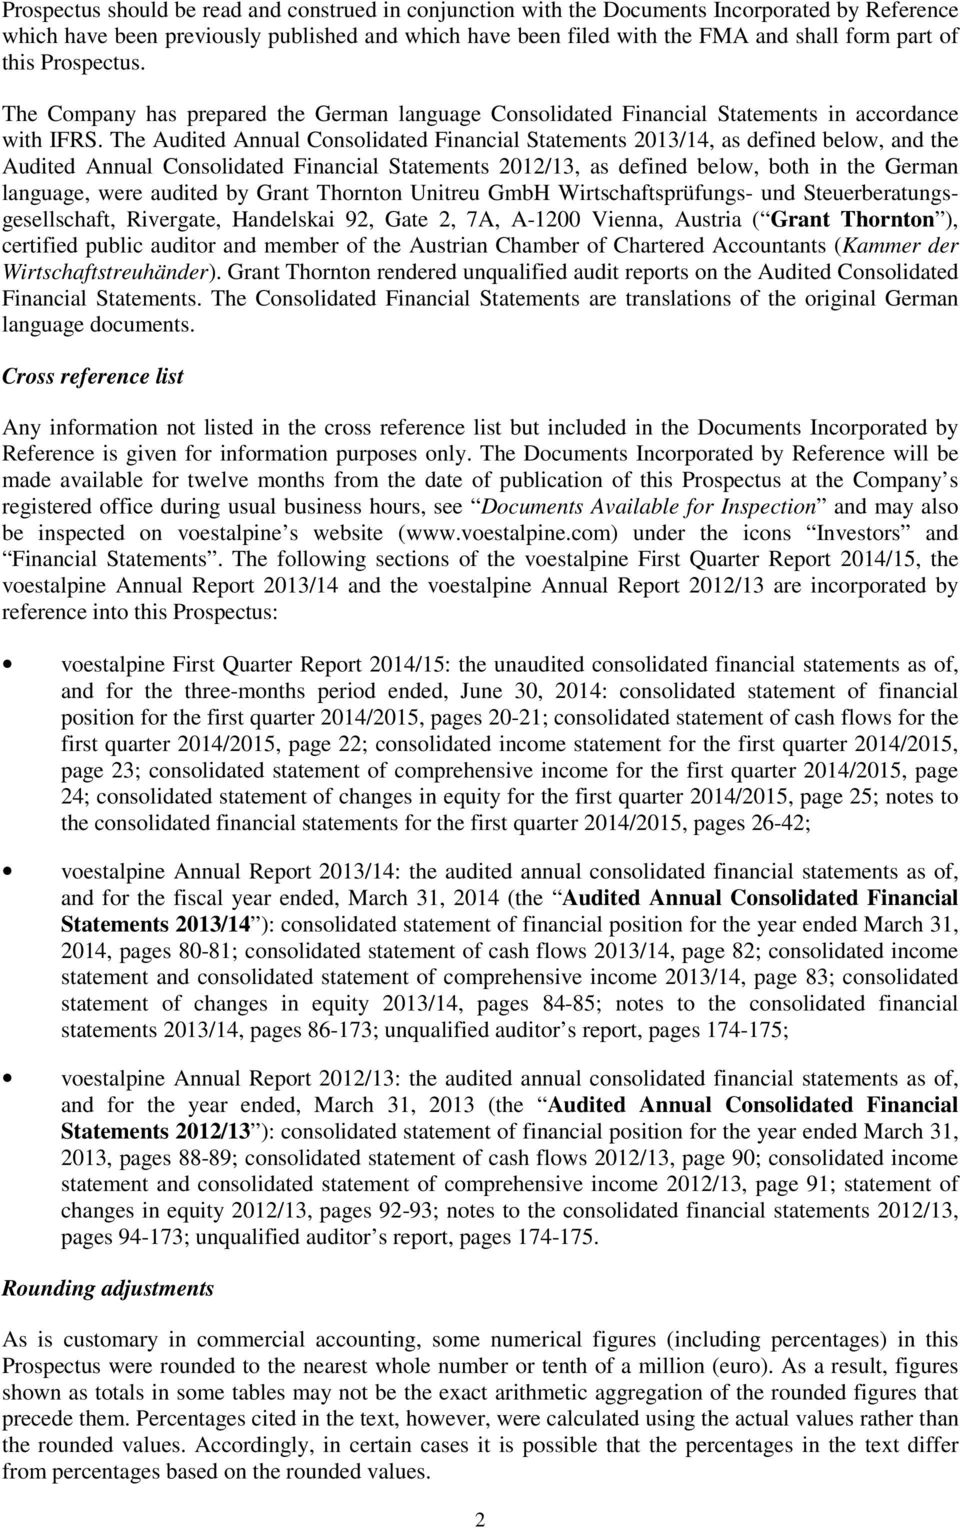 The Audited Annual Consolidated Financial Statements 2013/14, as defined below, and the Audited Annual Consolidated Financial Statements 2012/13, as defined below, both in the German language, were